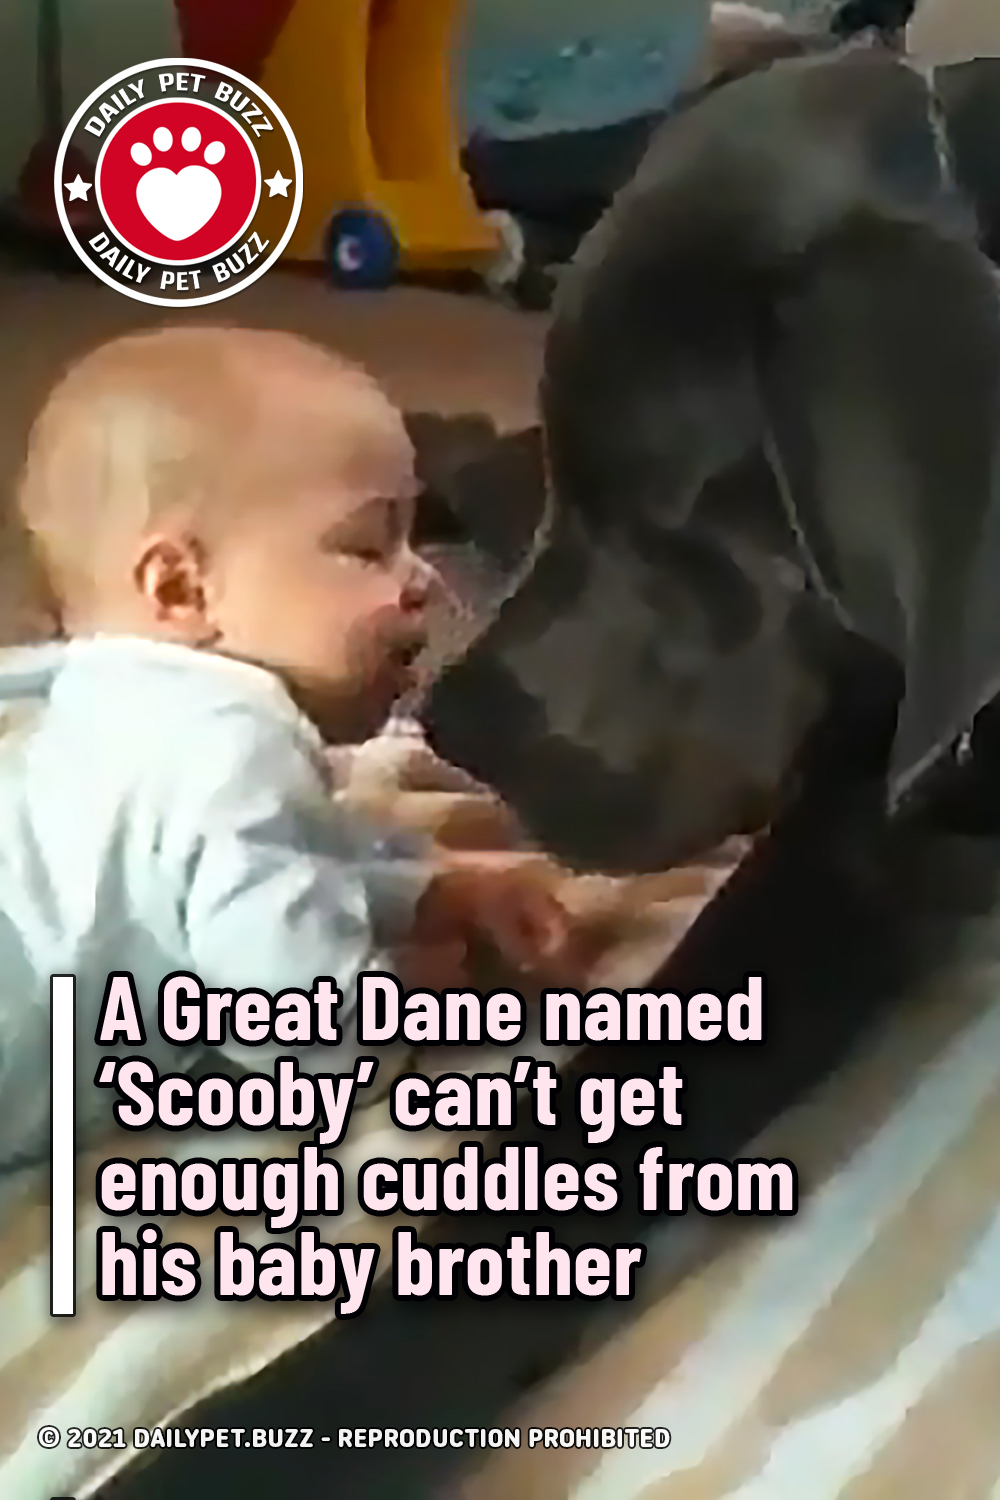 A Great Dane named 'Scooby' can't get enough cuddles from his baby brother